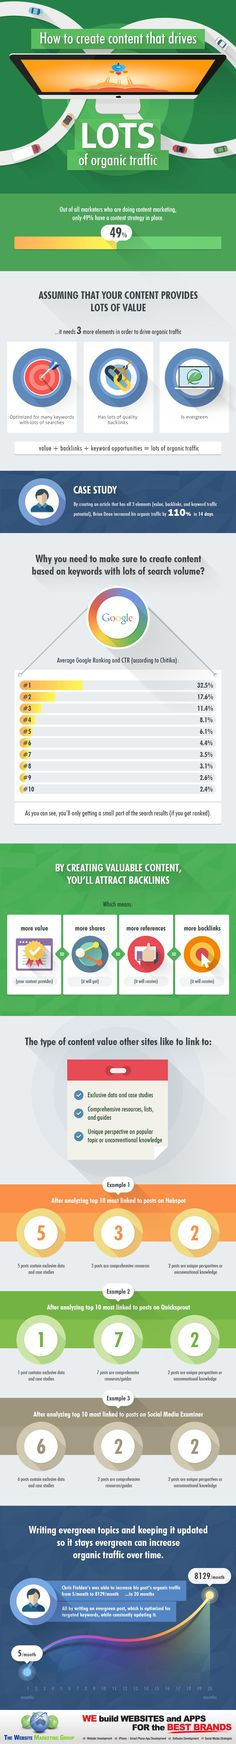 Content Marketing To Drive Organic Traffic to Your Website